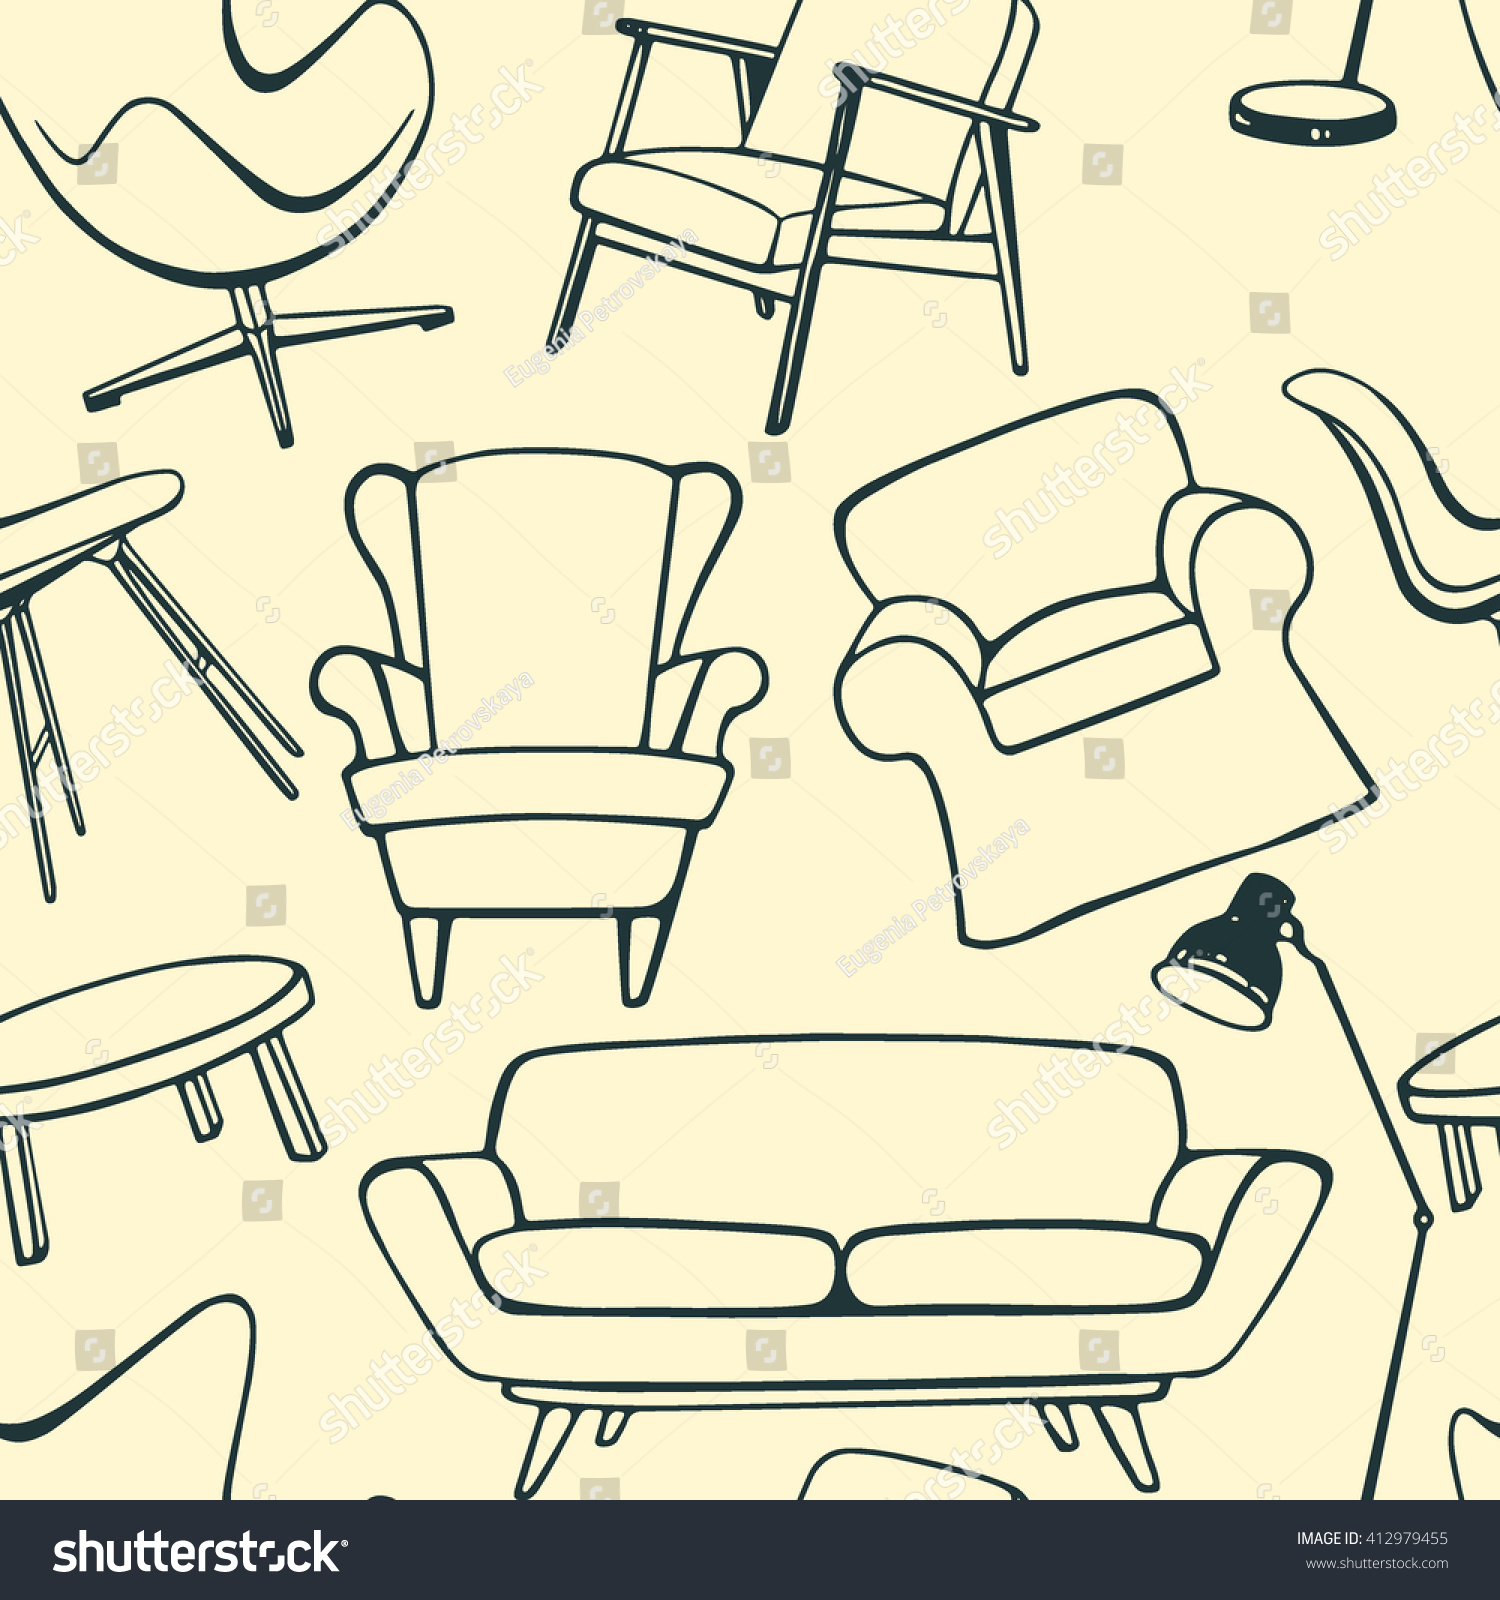 Vector Seamless Pattern With Hand Drawn Furniture Items Beautiful Interior Design Elements Perfect For